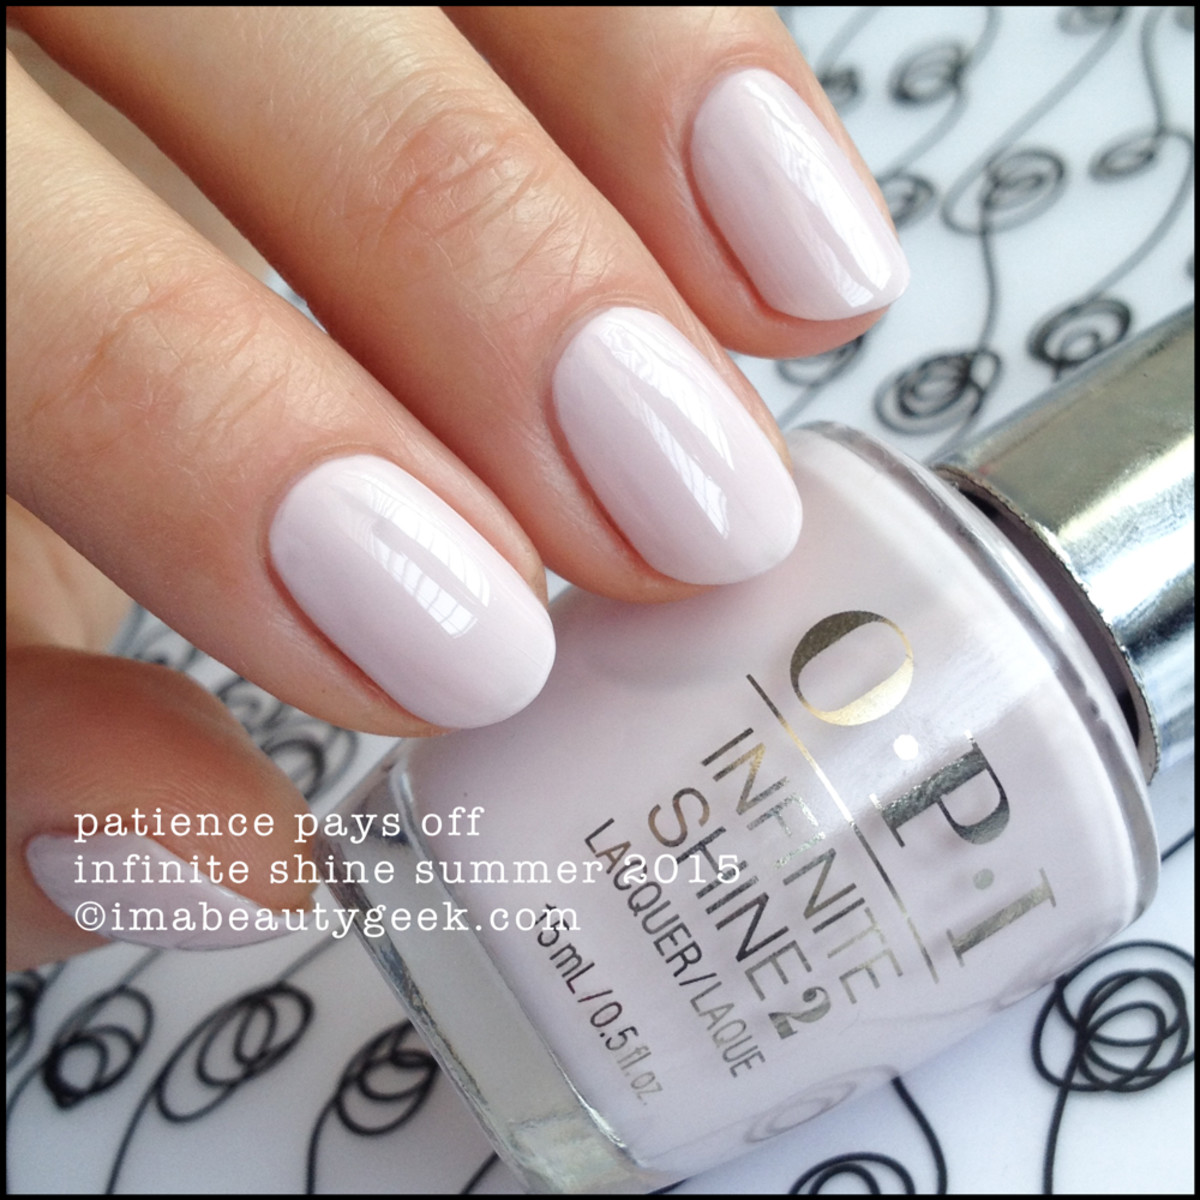 OPI Infinite Shine OPI Patience Pays Off Summer 2015